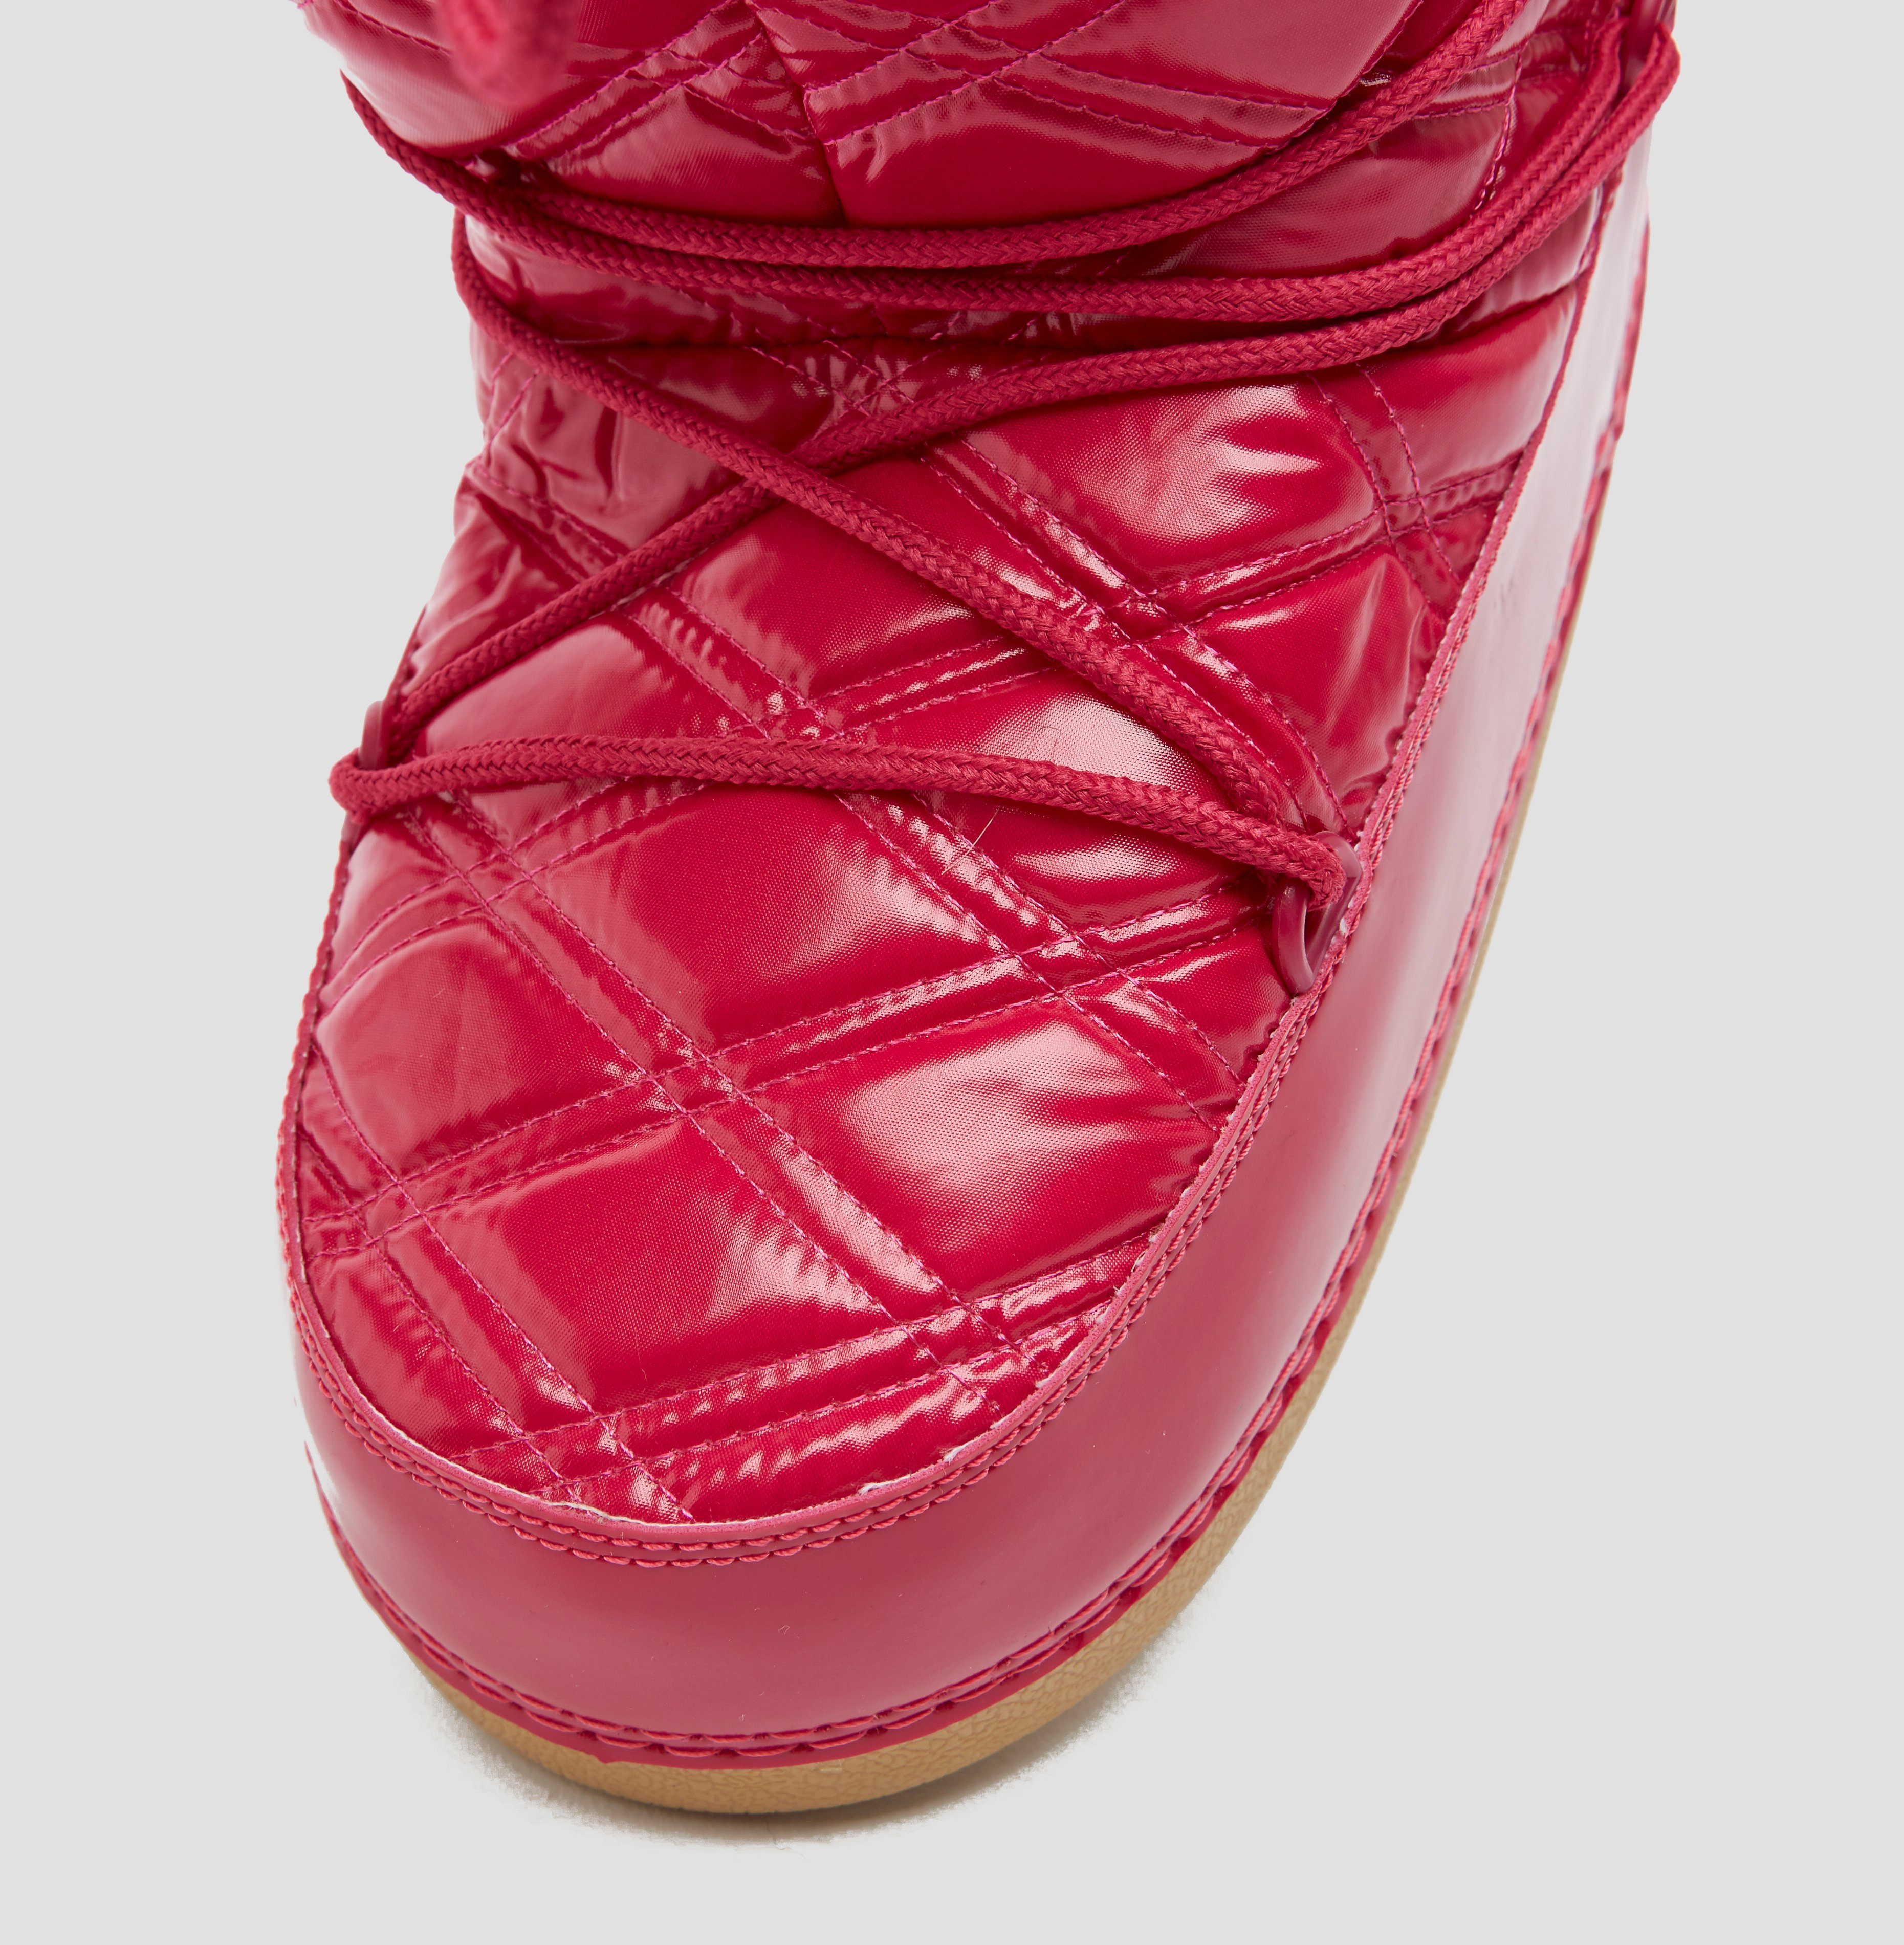 WINTER-GRIP LAK SNOWBOOTS ROZE DAMES